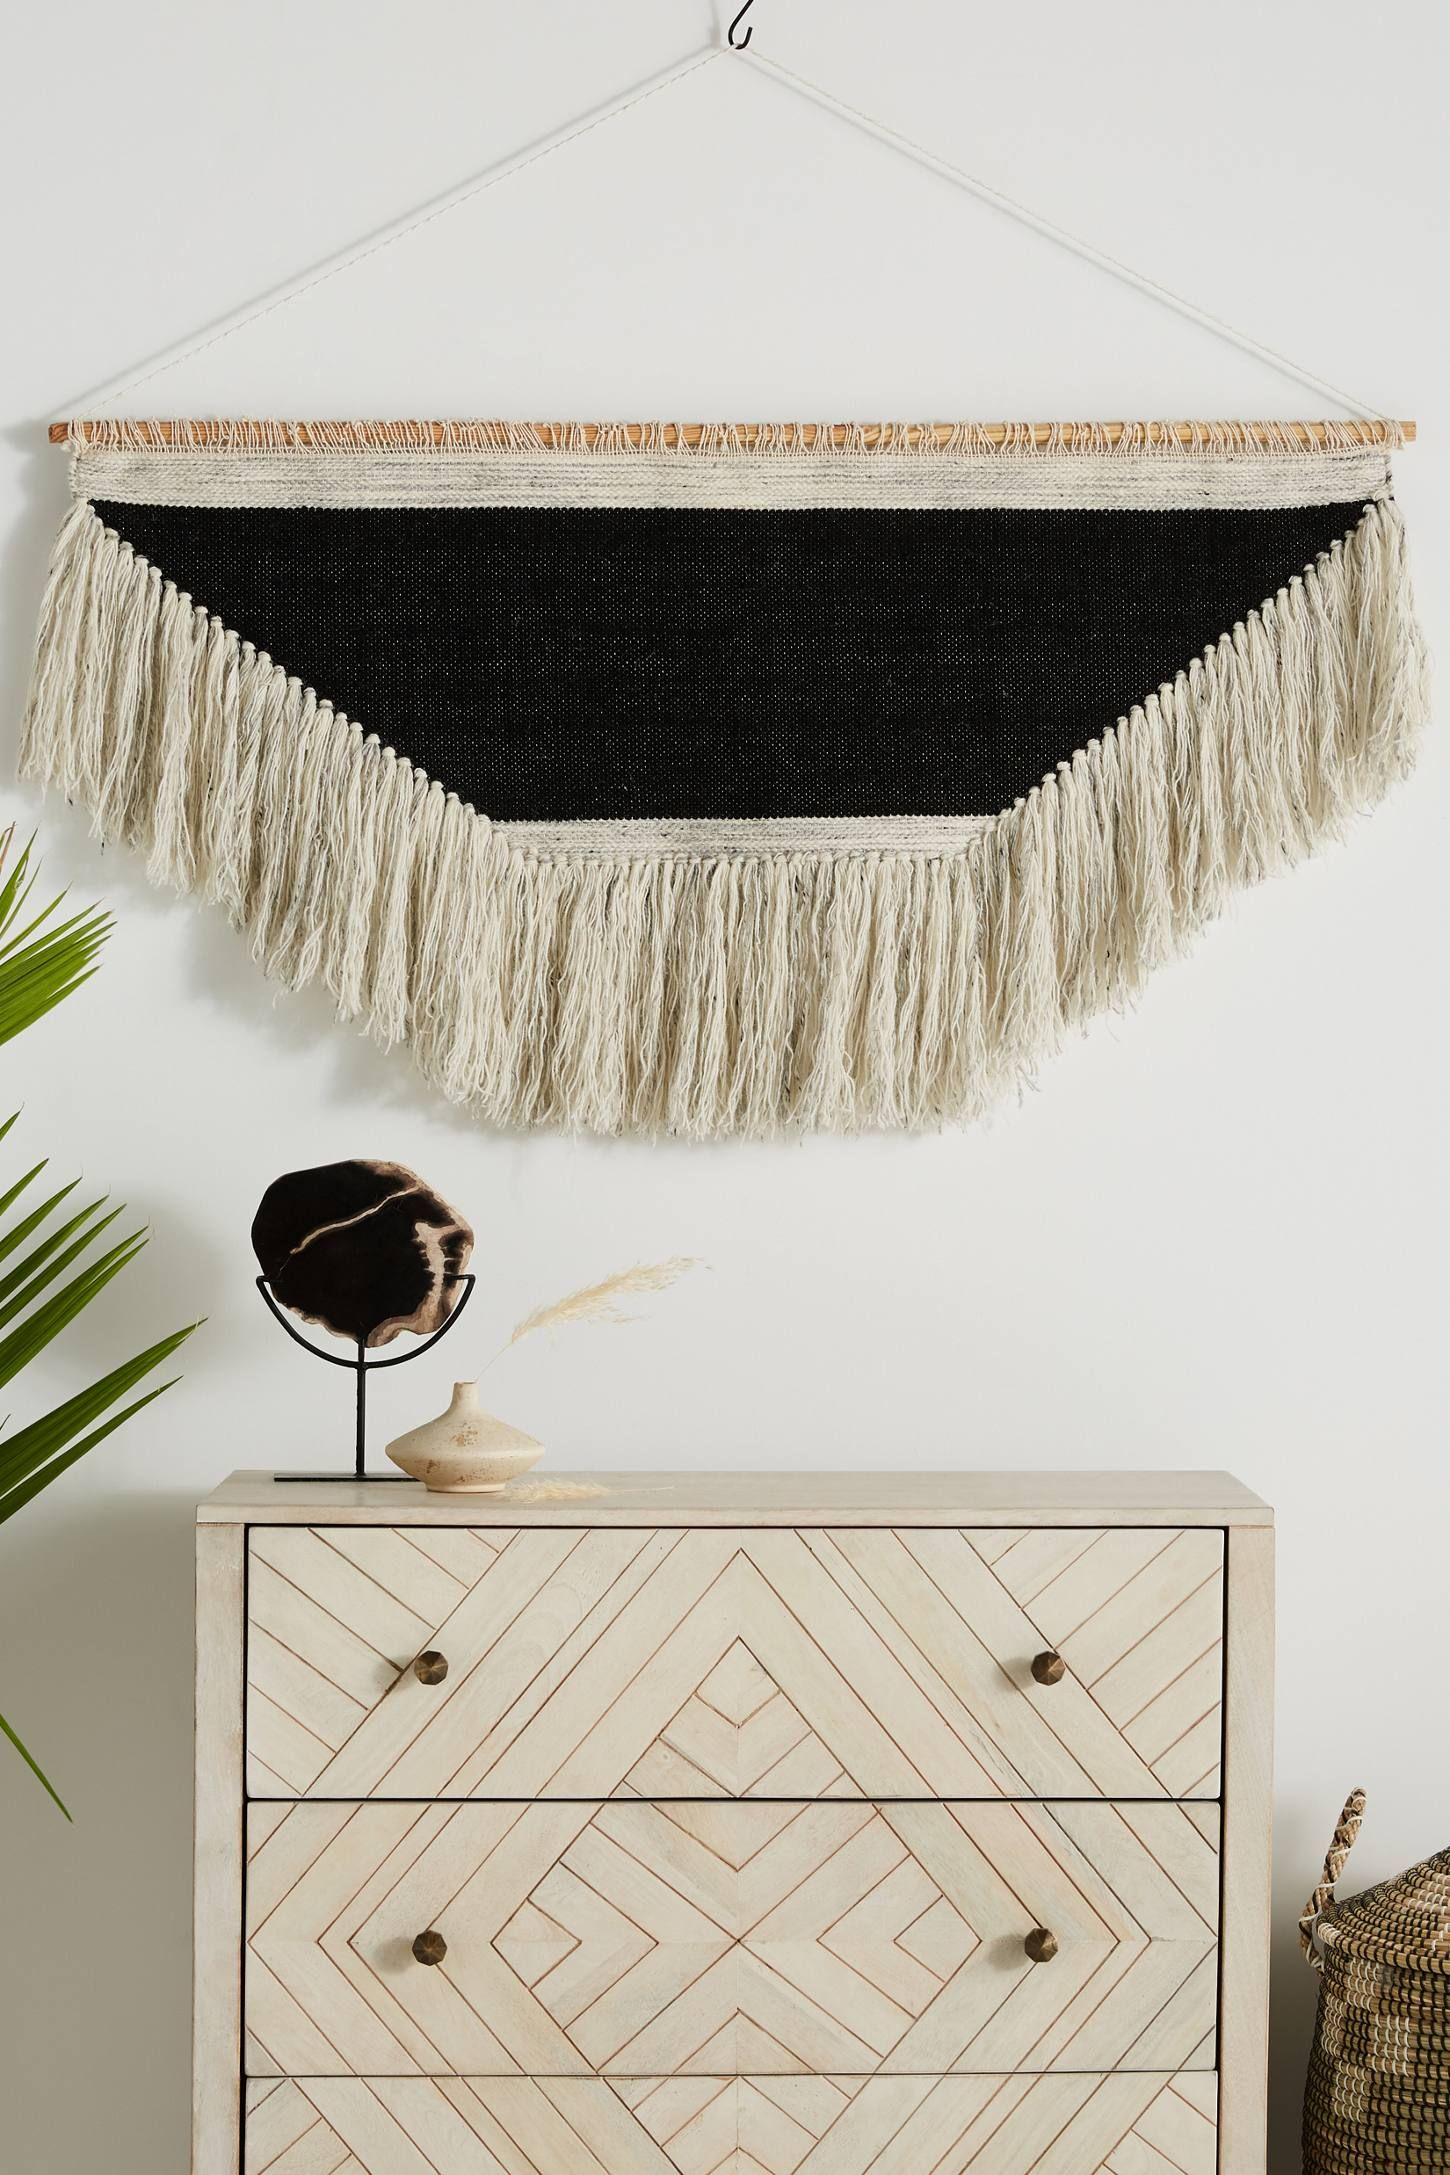 Shop The Odessa Woven Wall Art And More Anthropologie At Anthropologie Today Read Customer Reviews Discover Product Details And Woven Wall Art Wall Art Woven